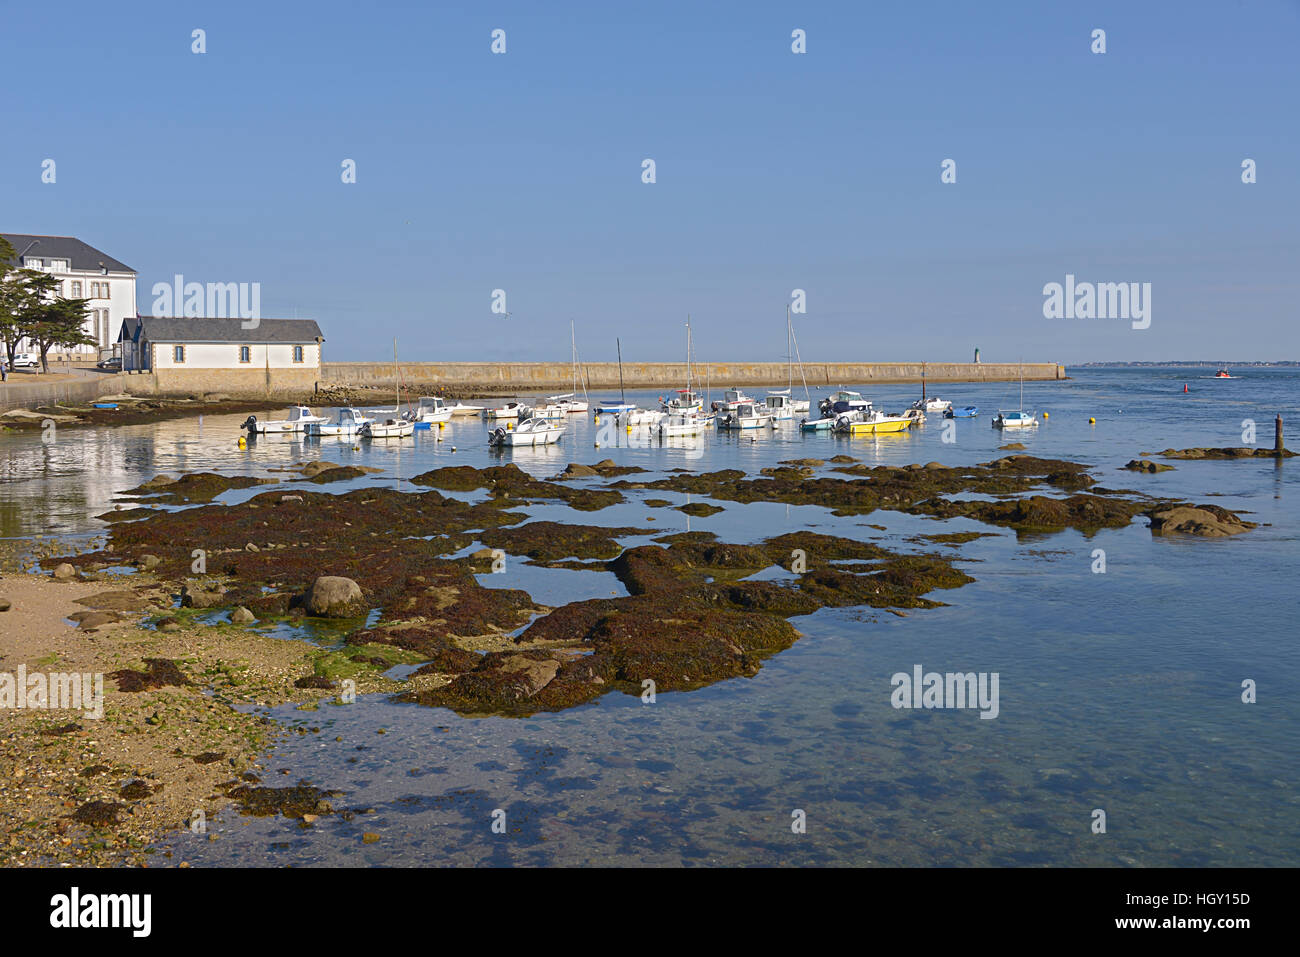 Little port of Le Croisic, a commune in the Loire-Atlantique department in western France Stock Photo